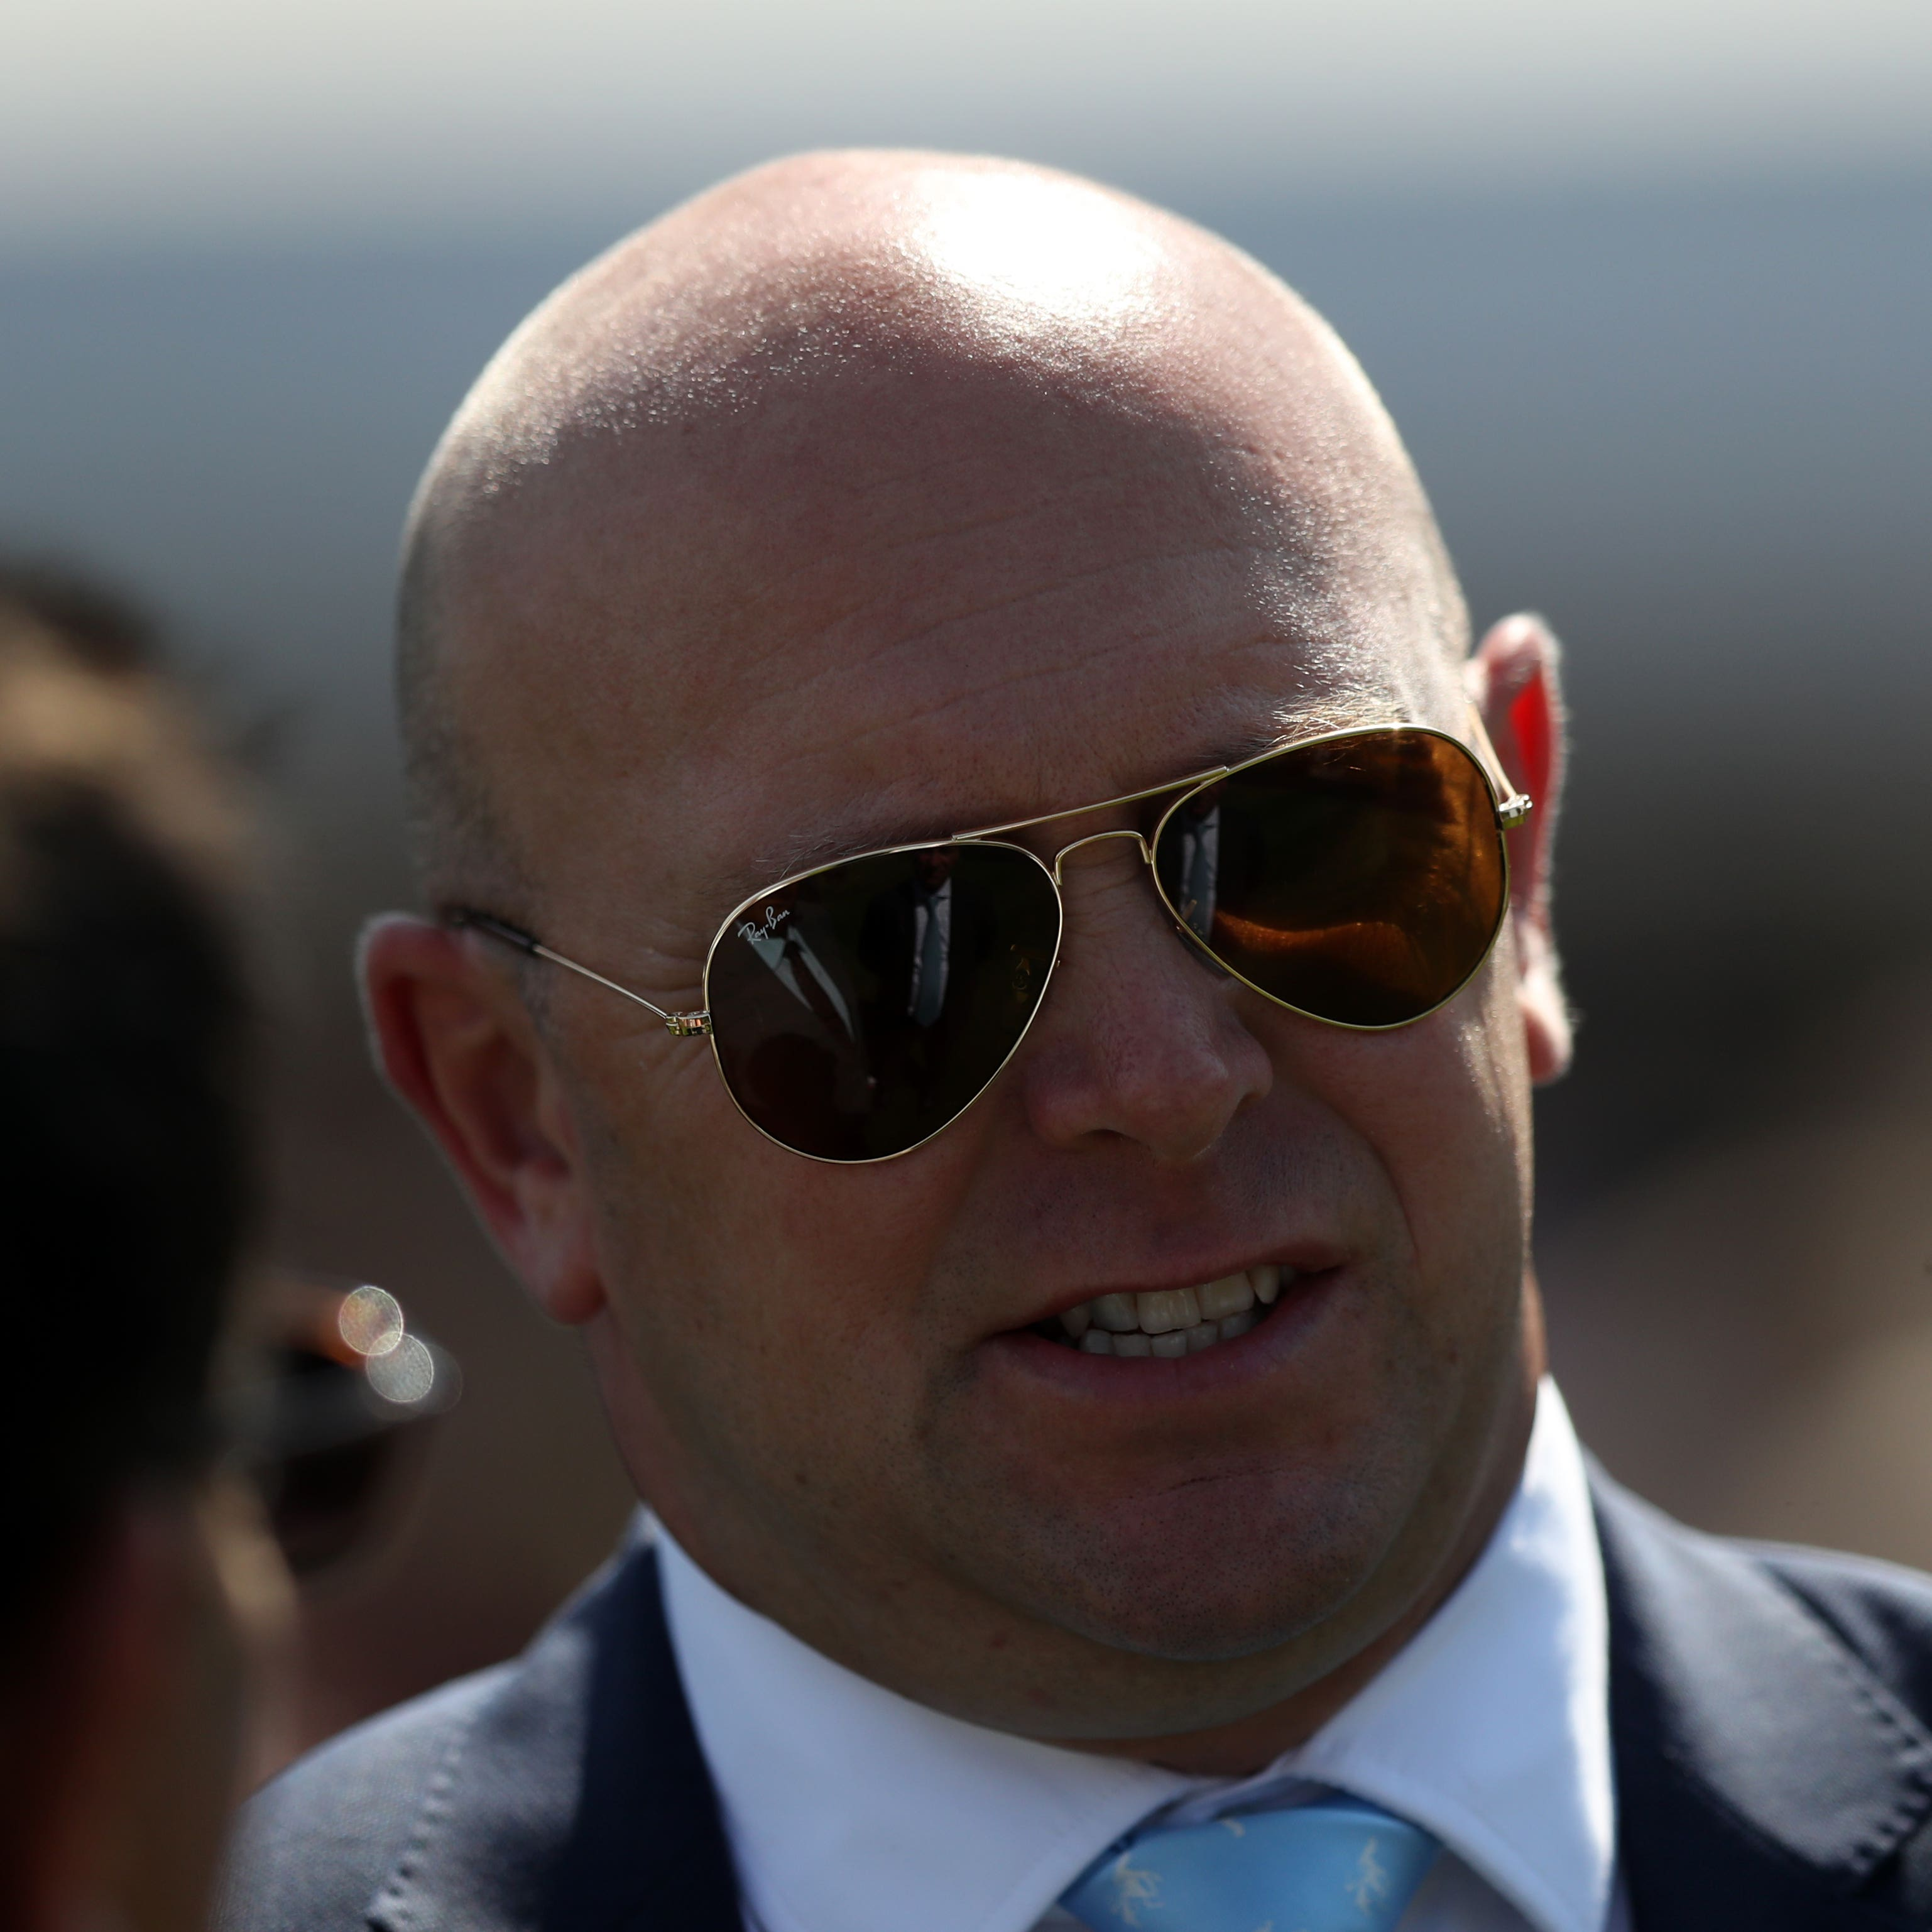 Owen Burrows hopes Elwazir can provide him with Group-race glory at Haydock